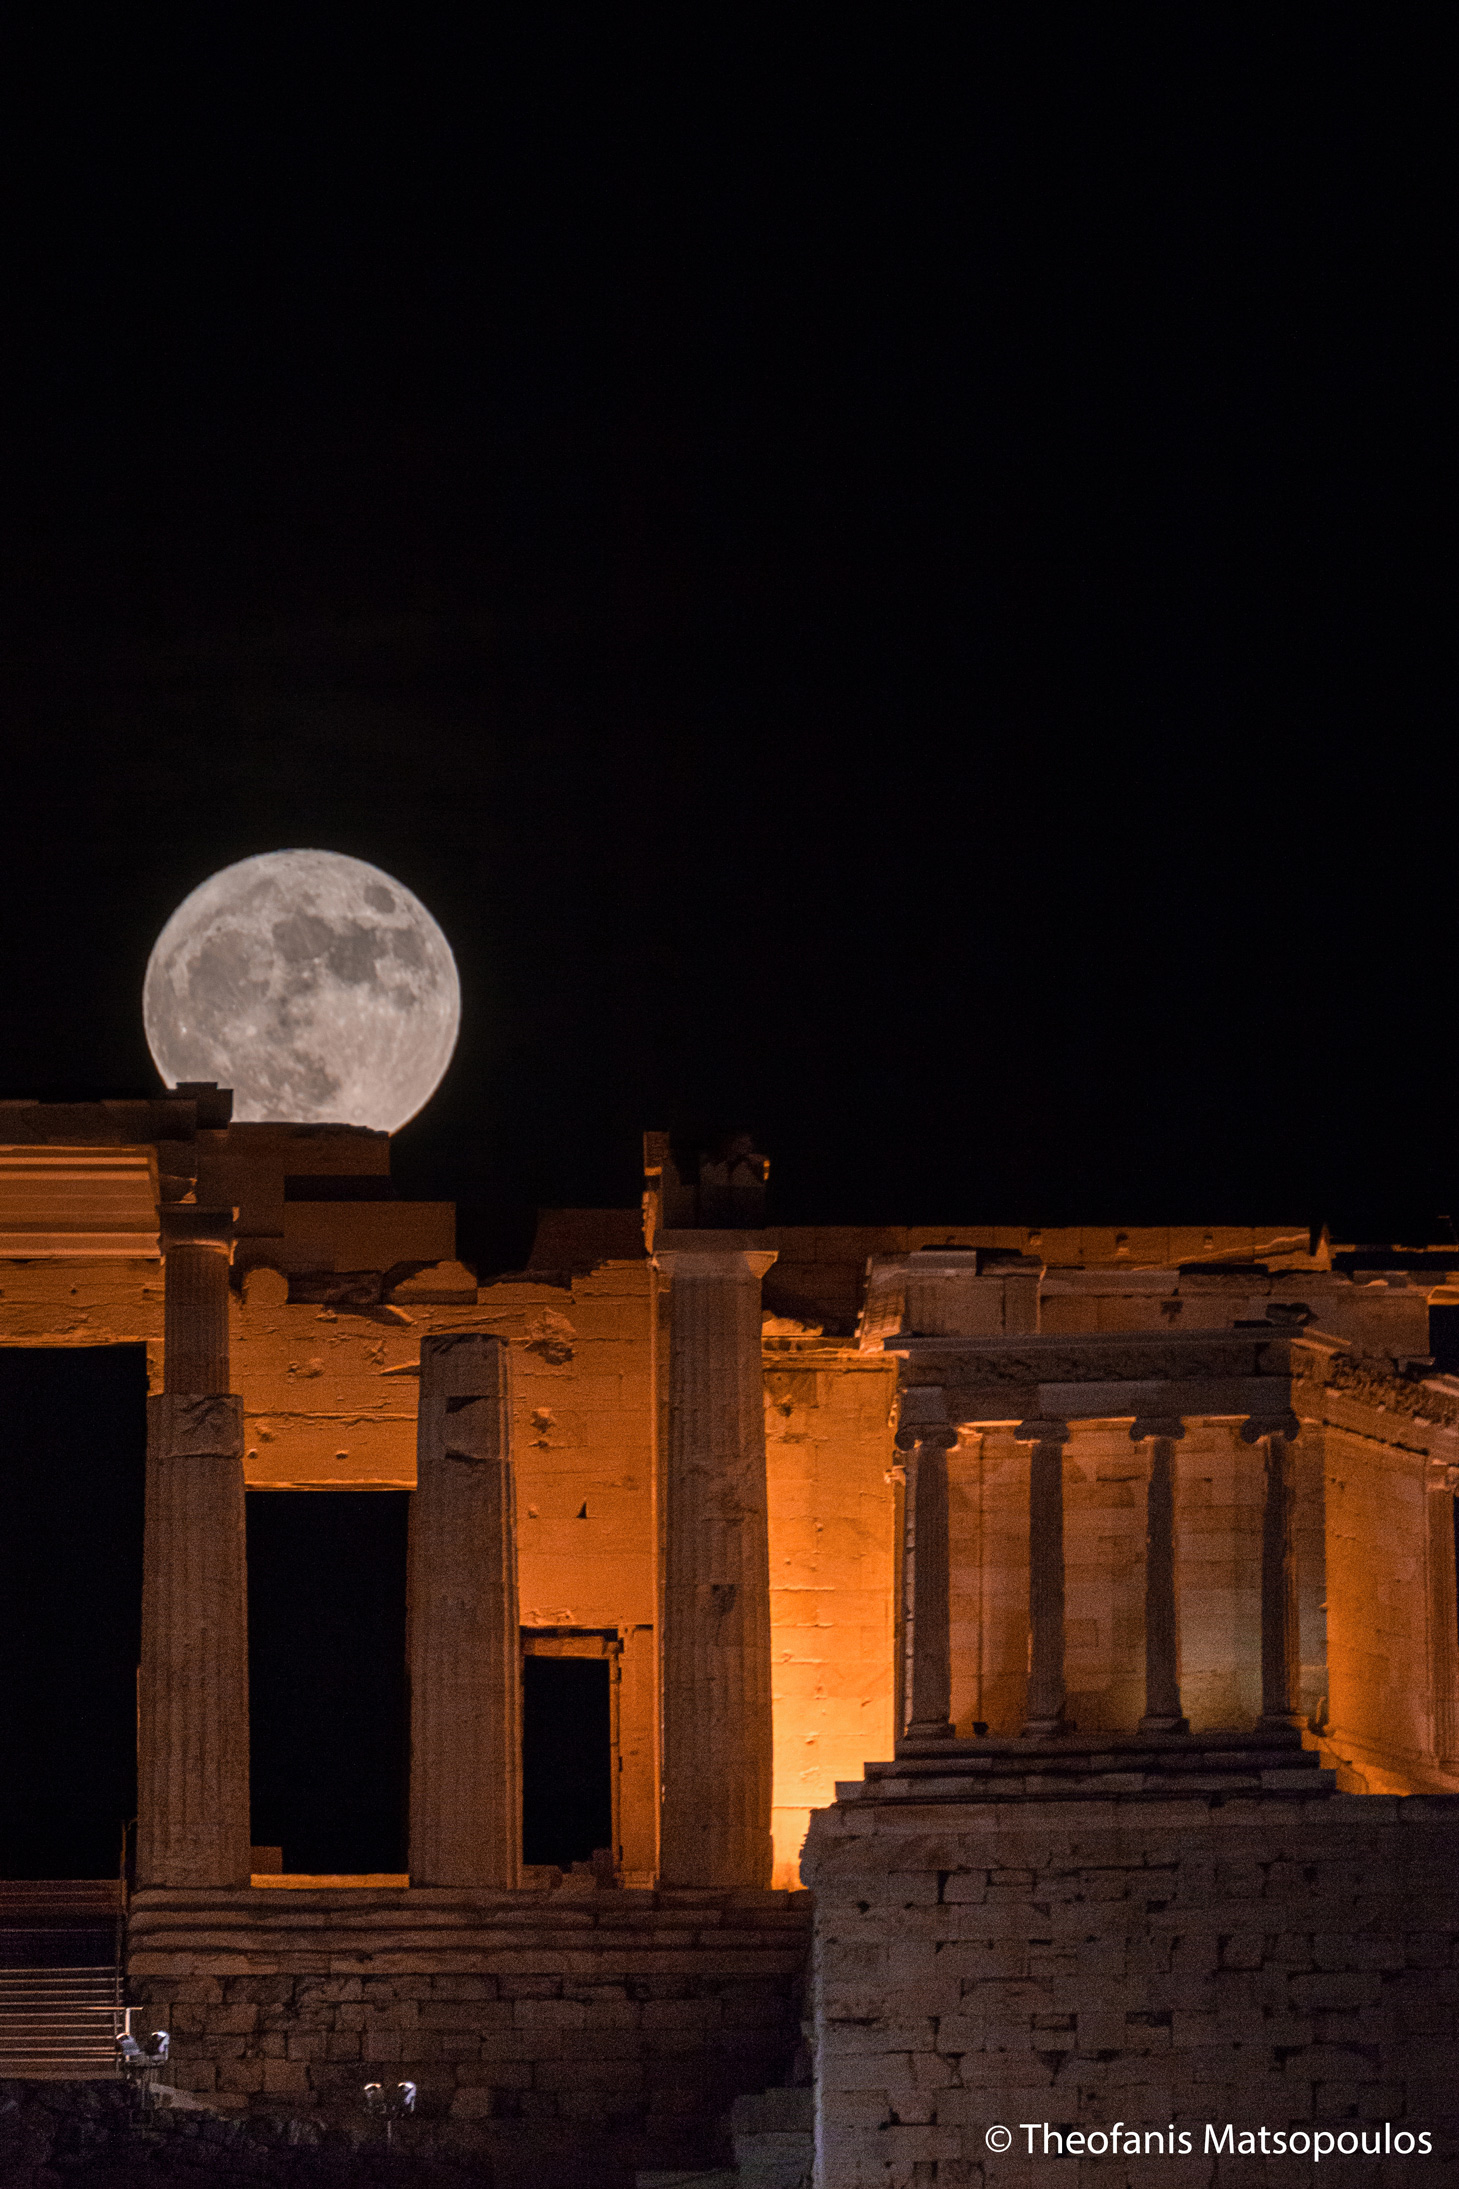 Acropolis-Super-Full-Moon-Matsopoulos2